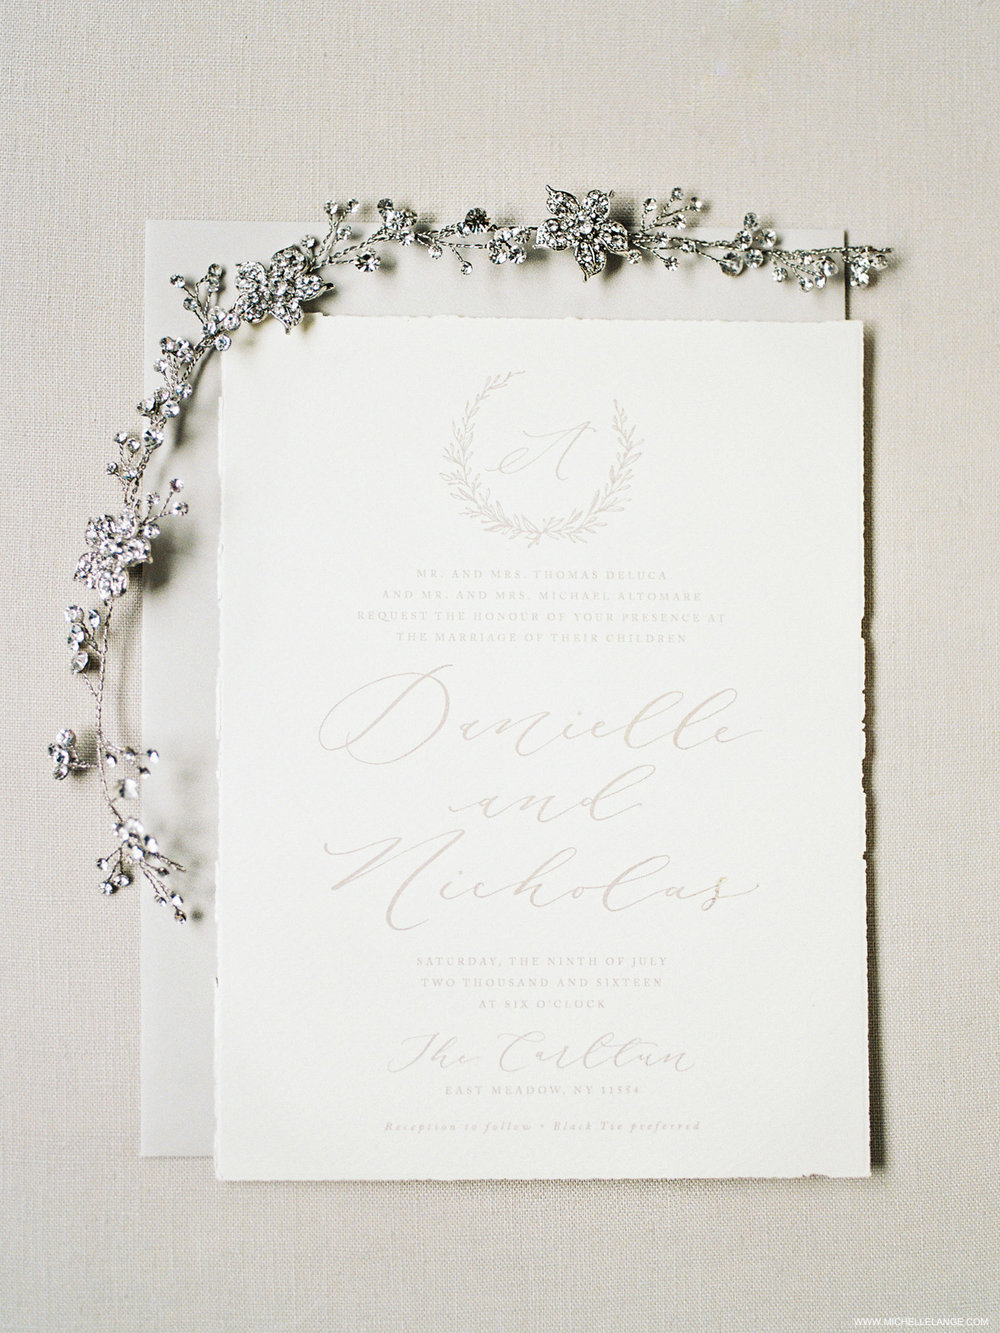 NY Wedding Photographer with Linen and Leaf Invitations